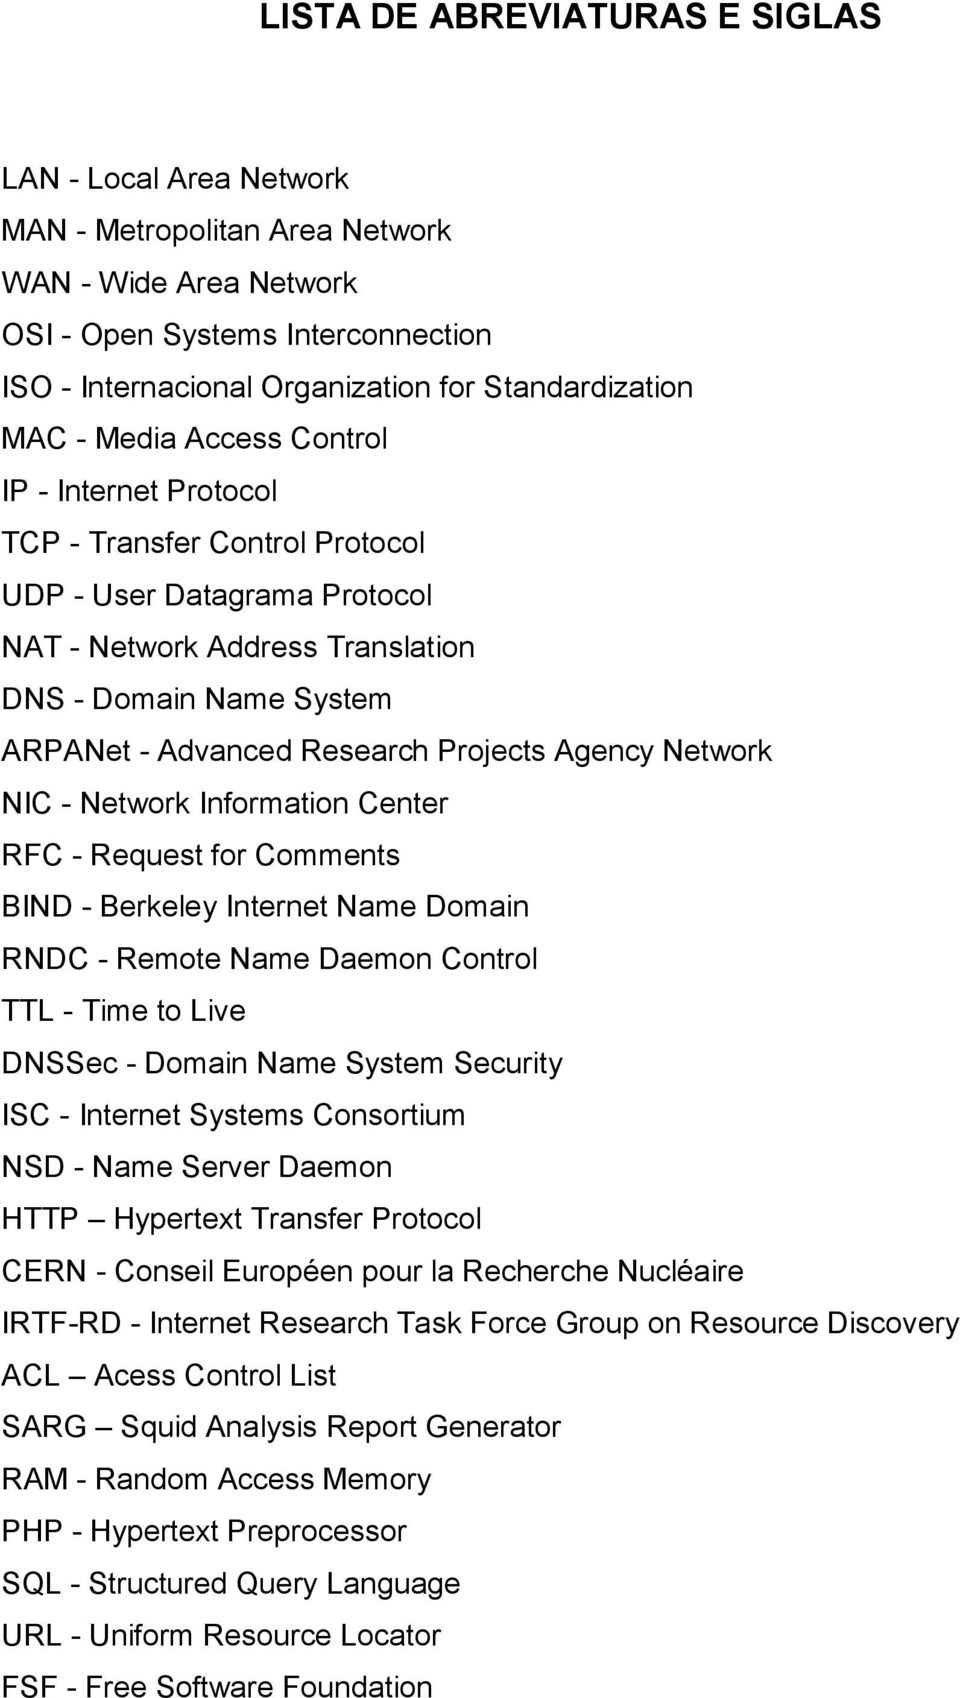 Projects Agency Network NIC - Network Information Center RFC - Request for Comments BIND - Berkeley Internet Name Domain RNDC - Remote Name Daemon Control TTL - Time to Live DNSSec - Domain Name